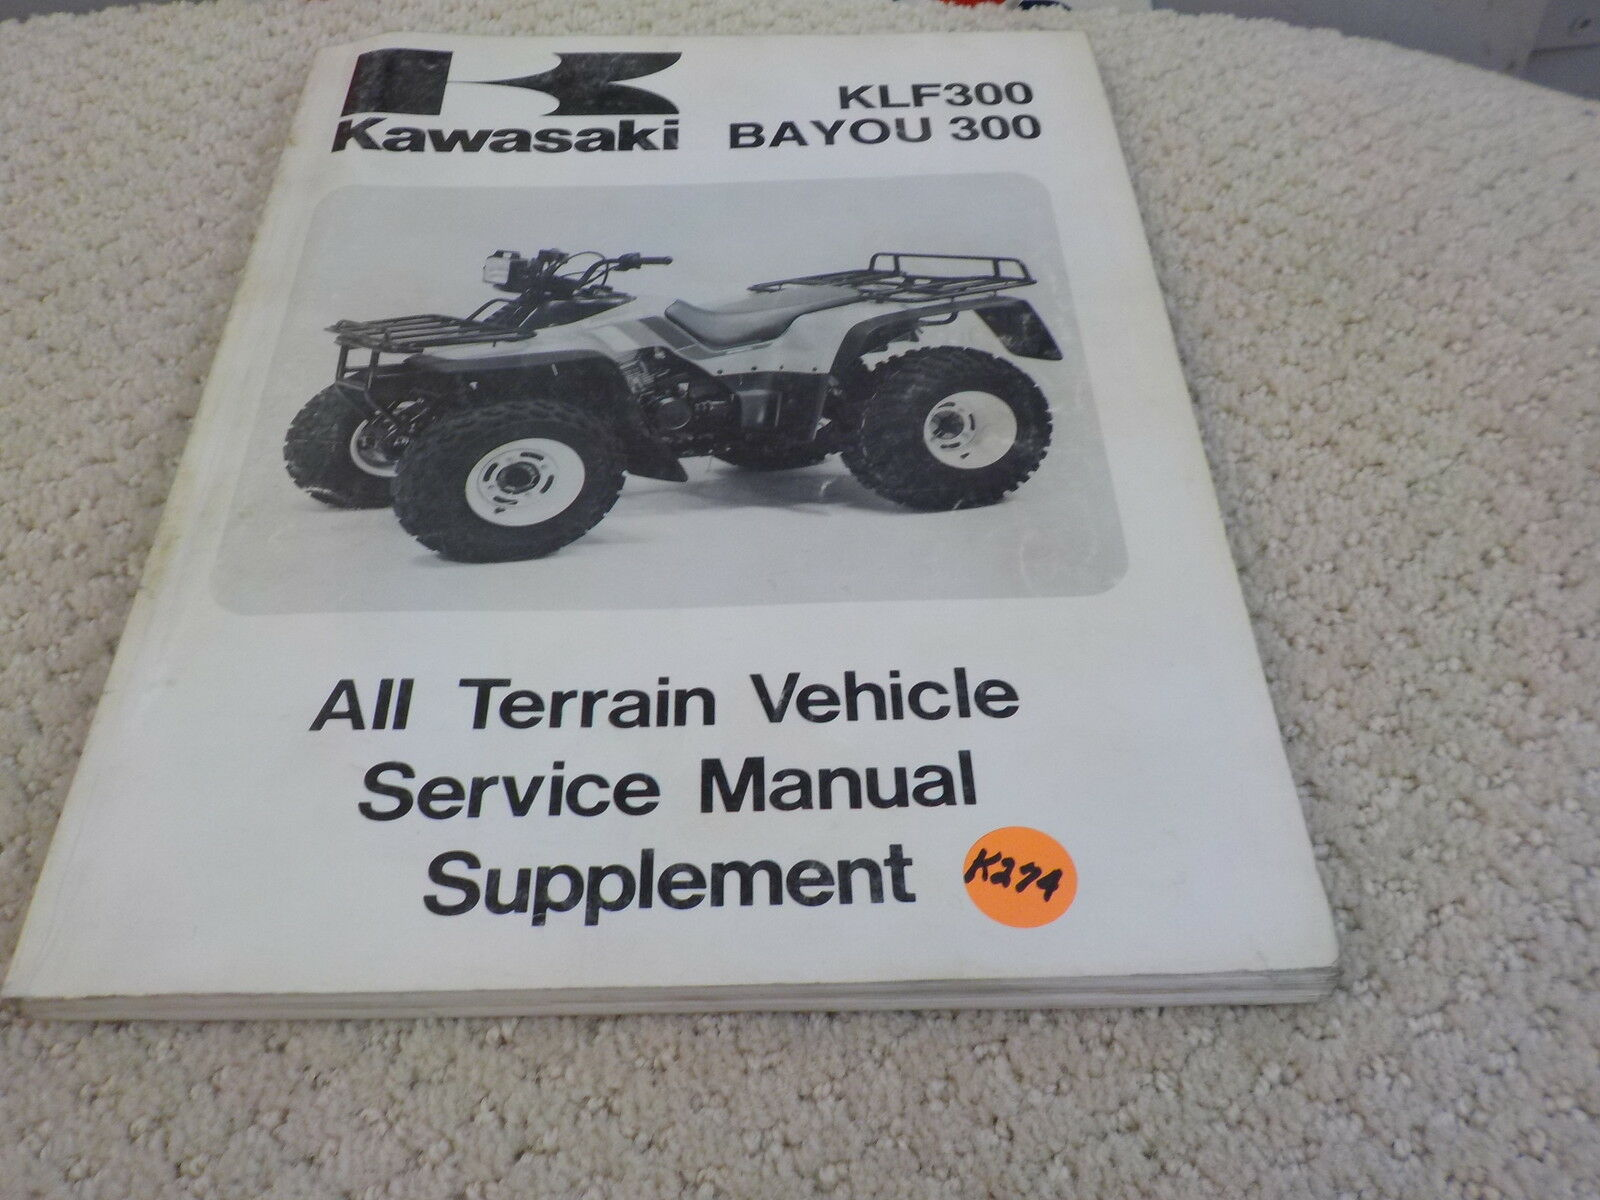 Kawasaki 1987-1996 Klf300, Bayou 300 Atv Service Manual 99924 1100-53 ( 1  of 1Only 1 available ...